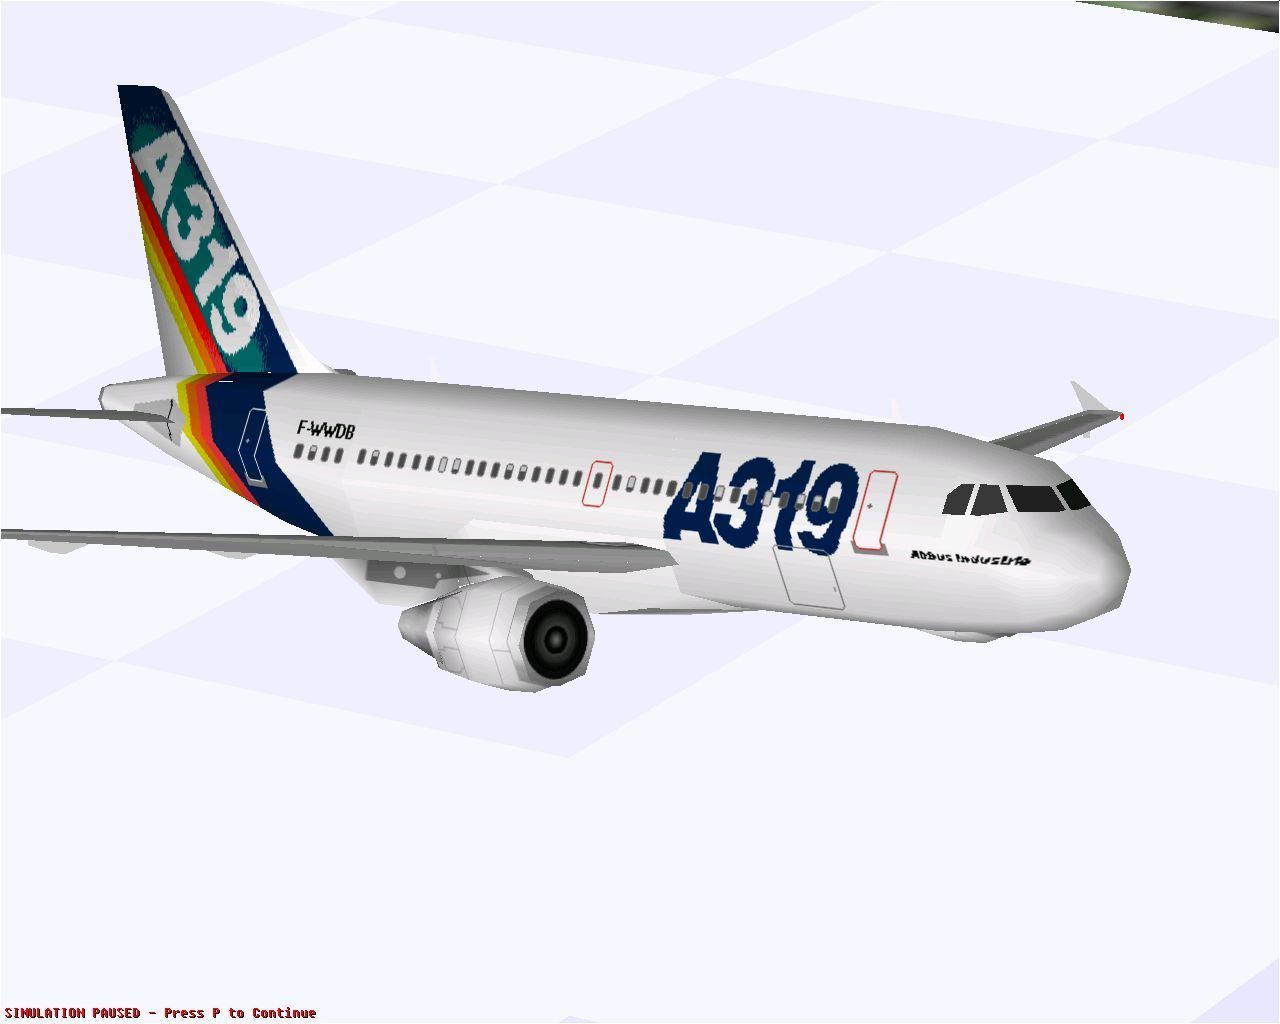 Airbus 2000: Special Edition Windows Airbus Industrie A319-112 in Microsoft Flight Simulator 98.